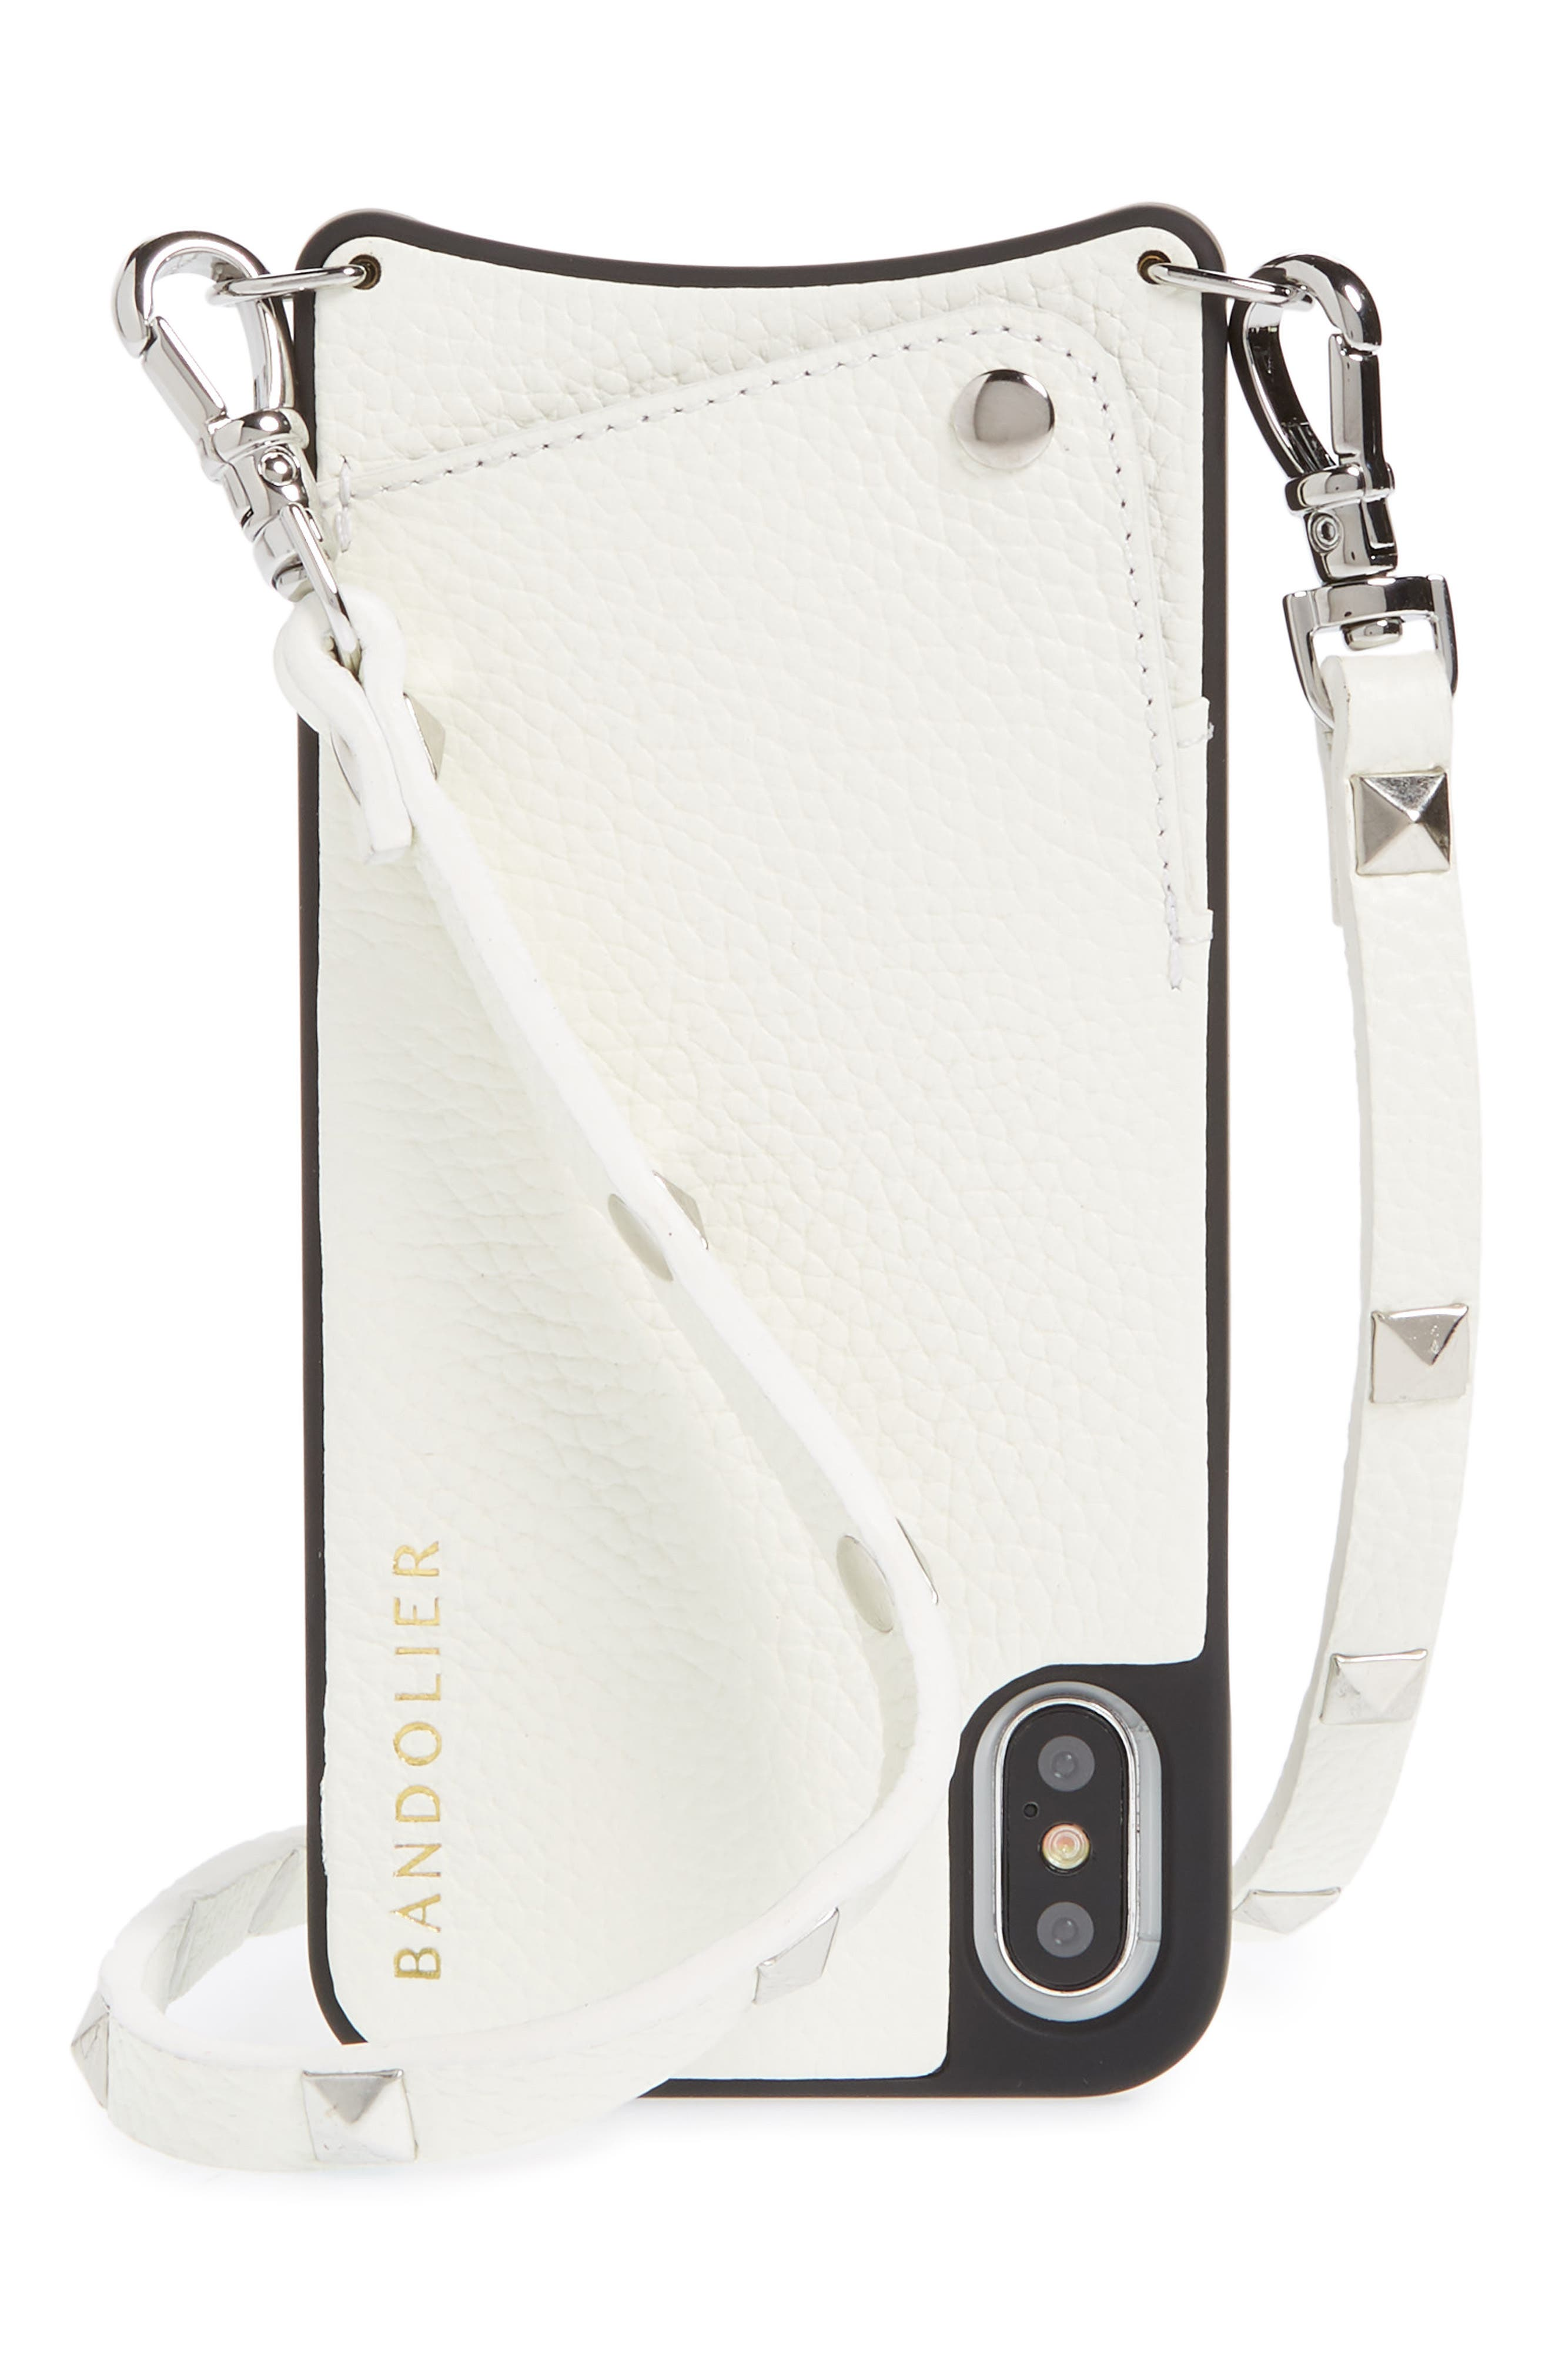 Sarah Leather iPhone X Crossbody Case,                         Main,                         color, White/ Silver